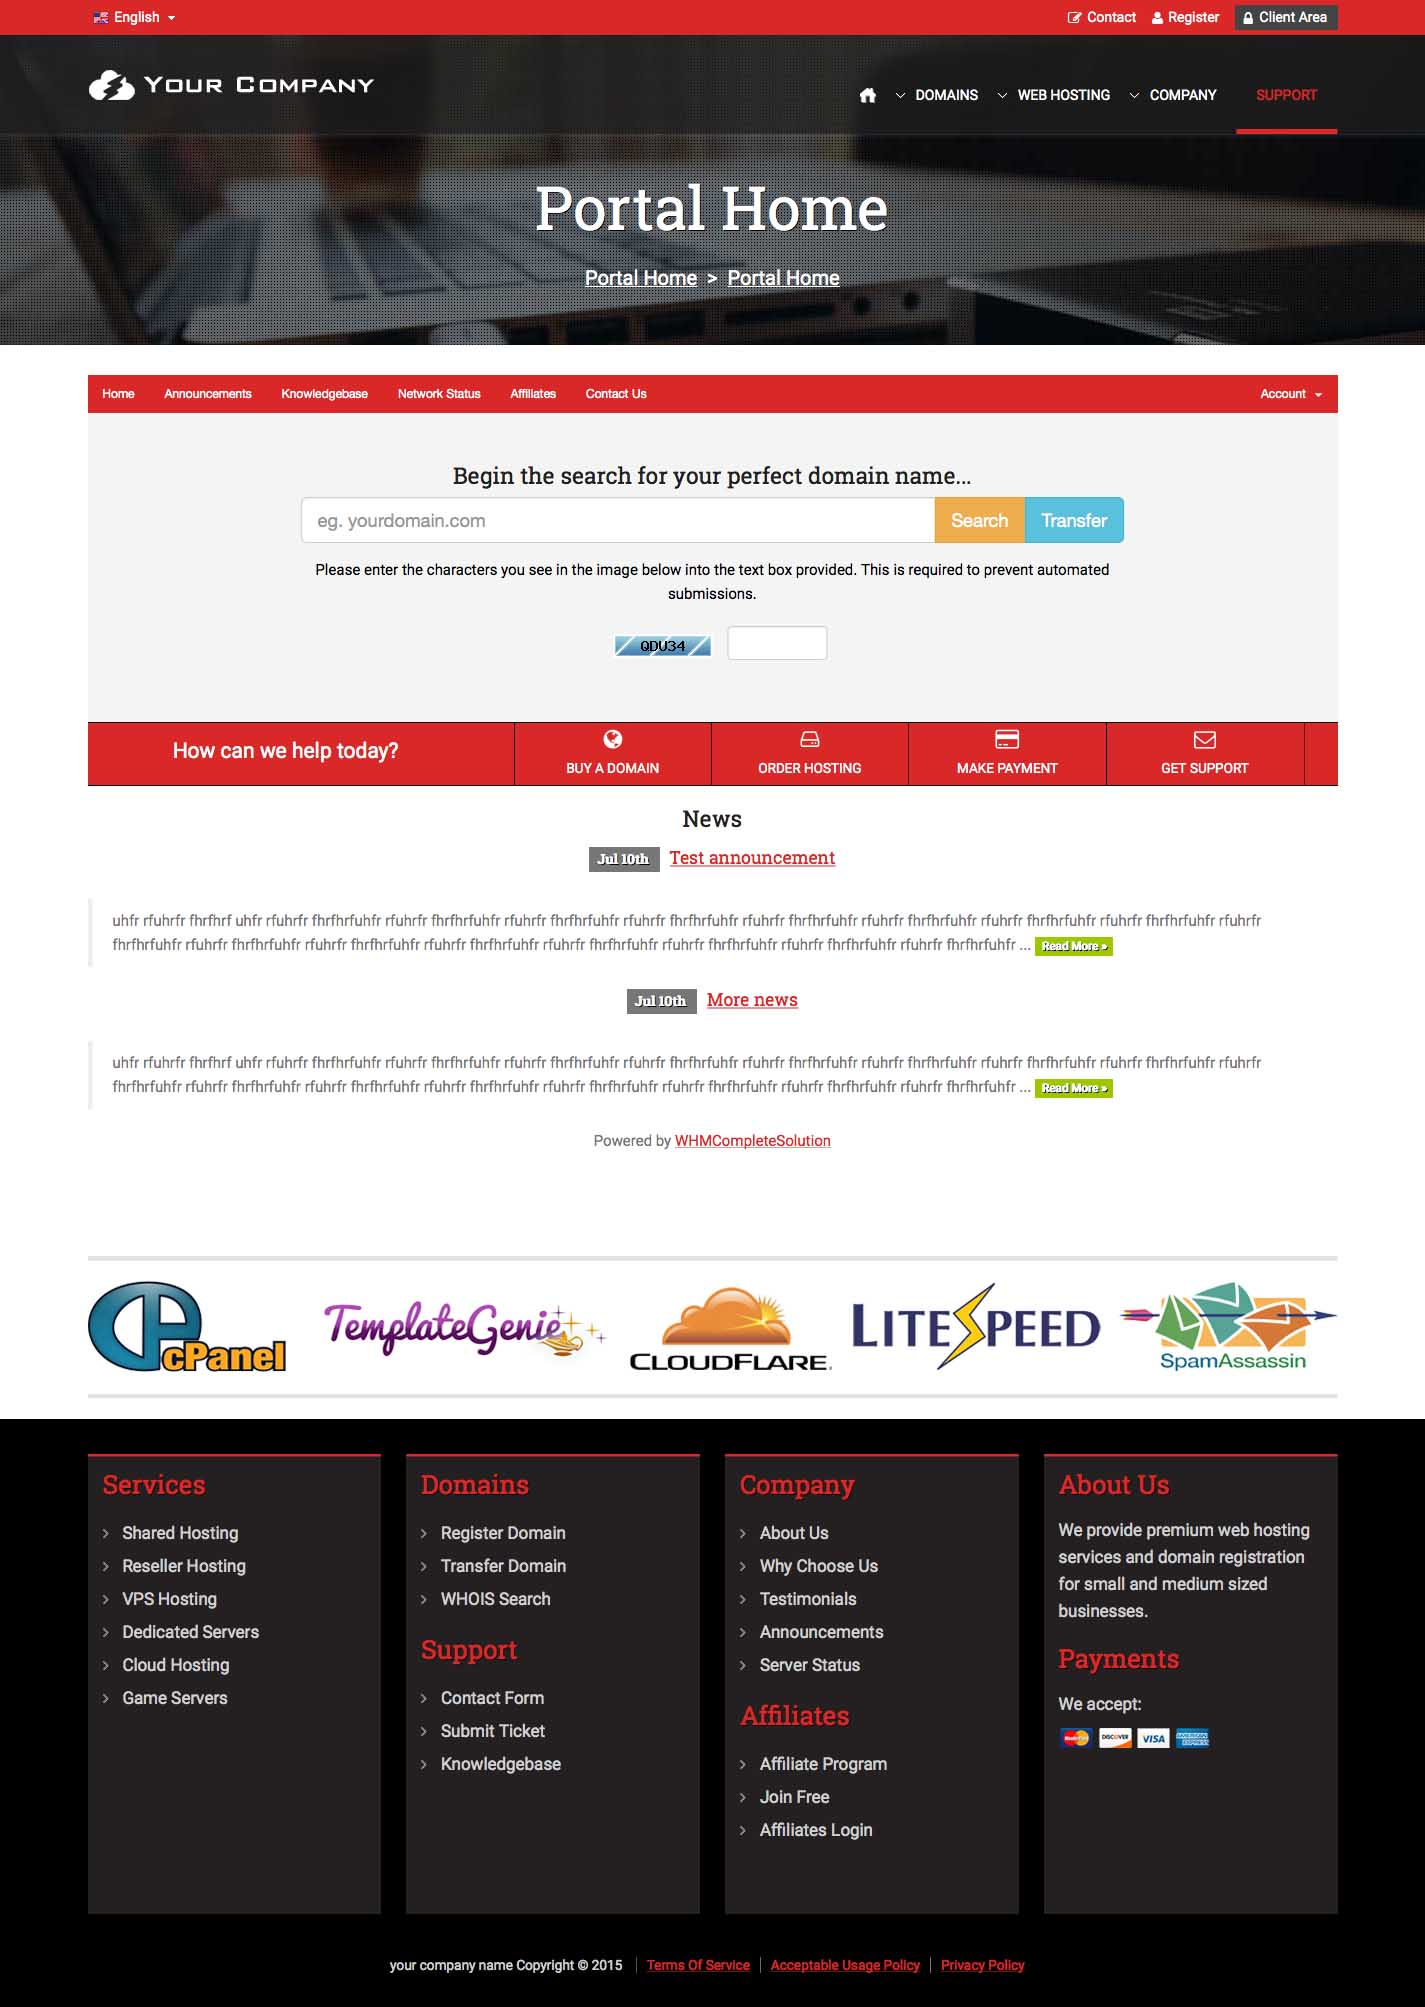 html5 css3 responsive template a highly professional website